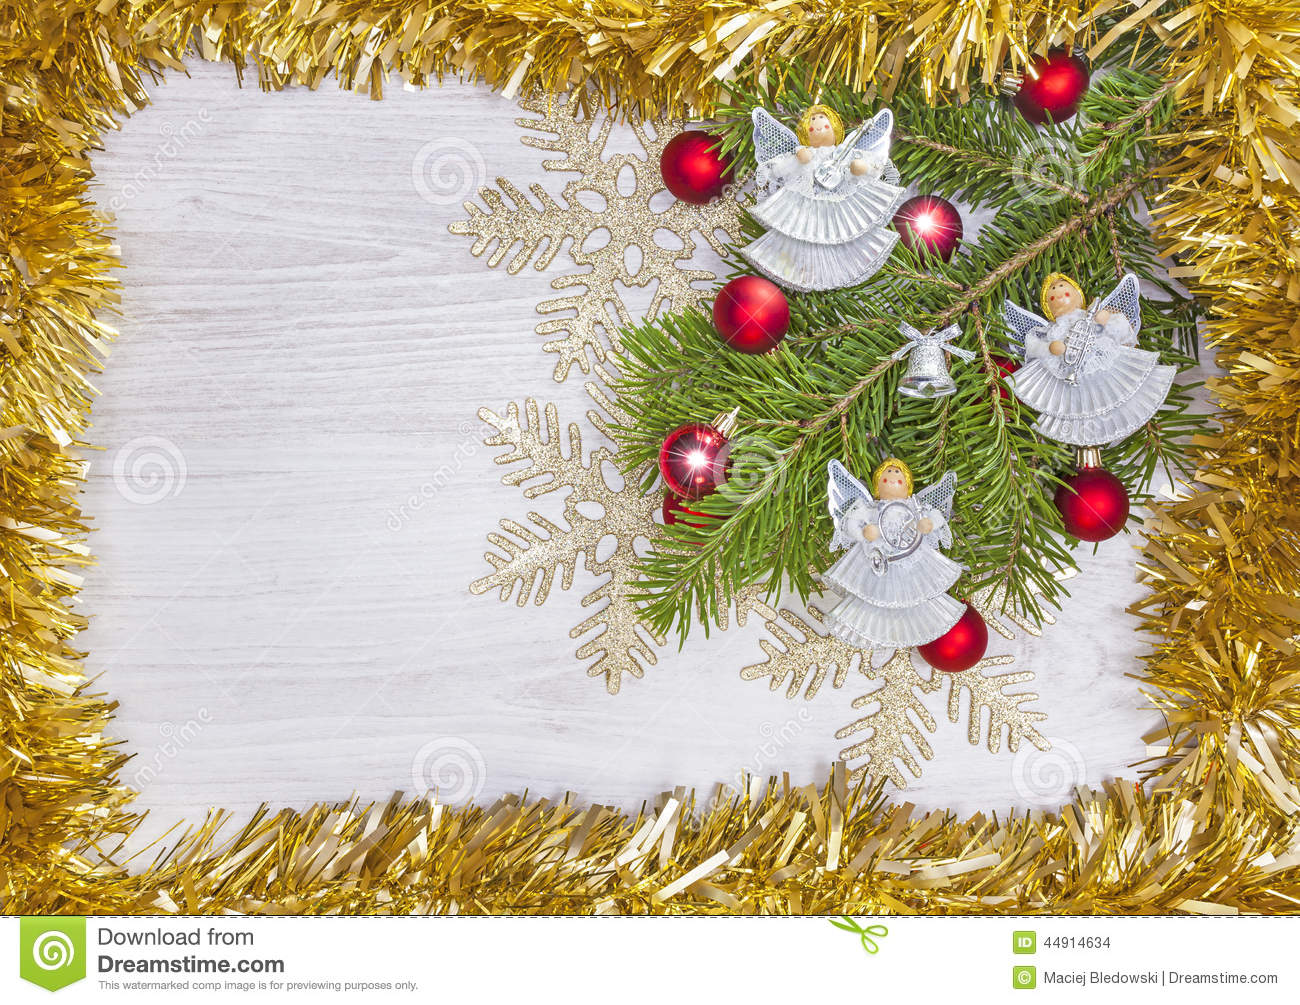 Angels Christmas Background.Christmas Background With Angels Decoration On A Wooden